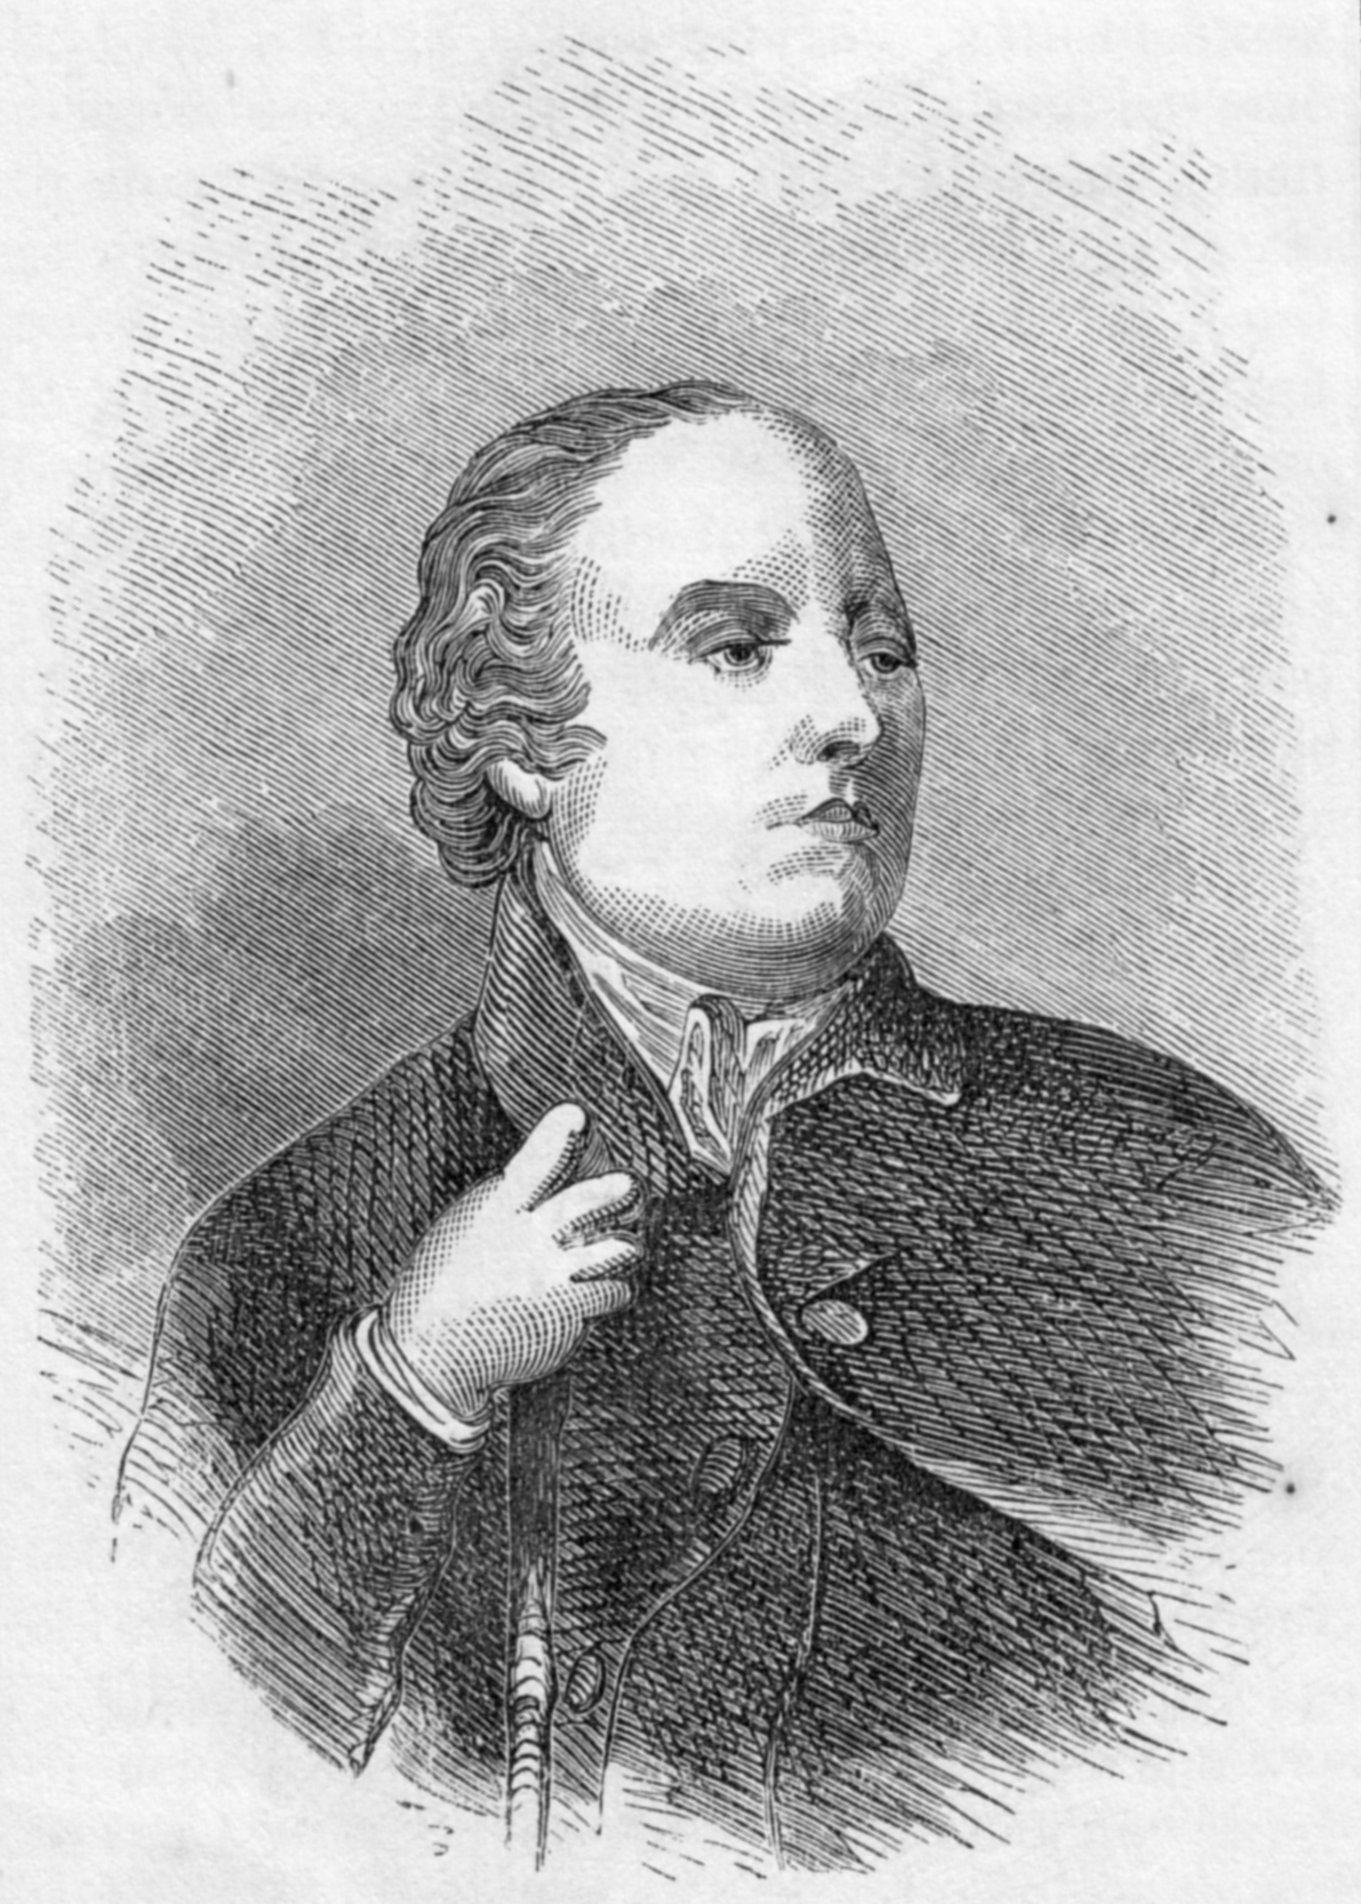 Rev. William Gilpin Harpers Engraving